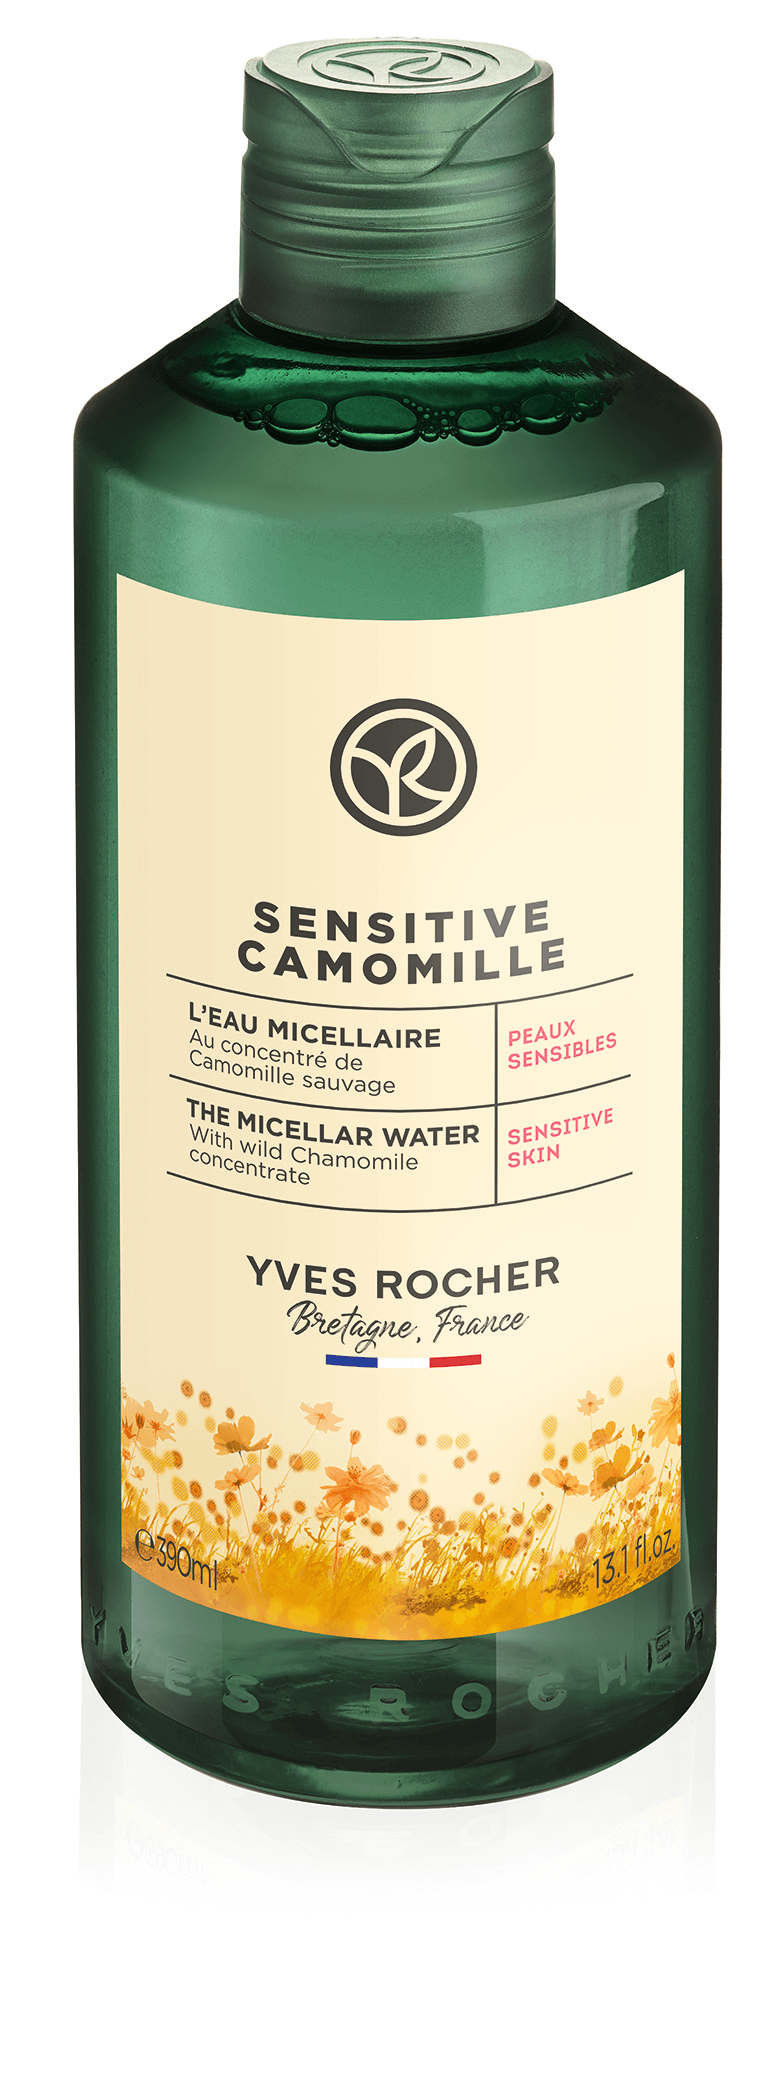 Yves Rocher Sensitive camomille- micelárna voda 390 ml